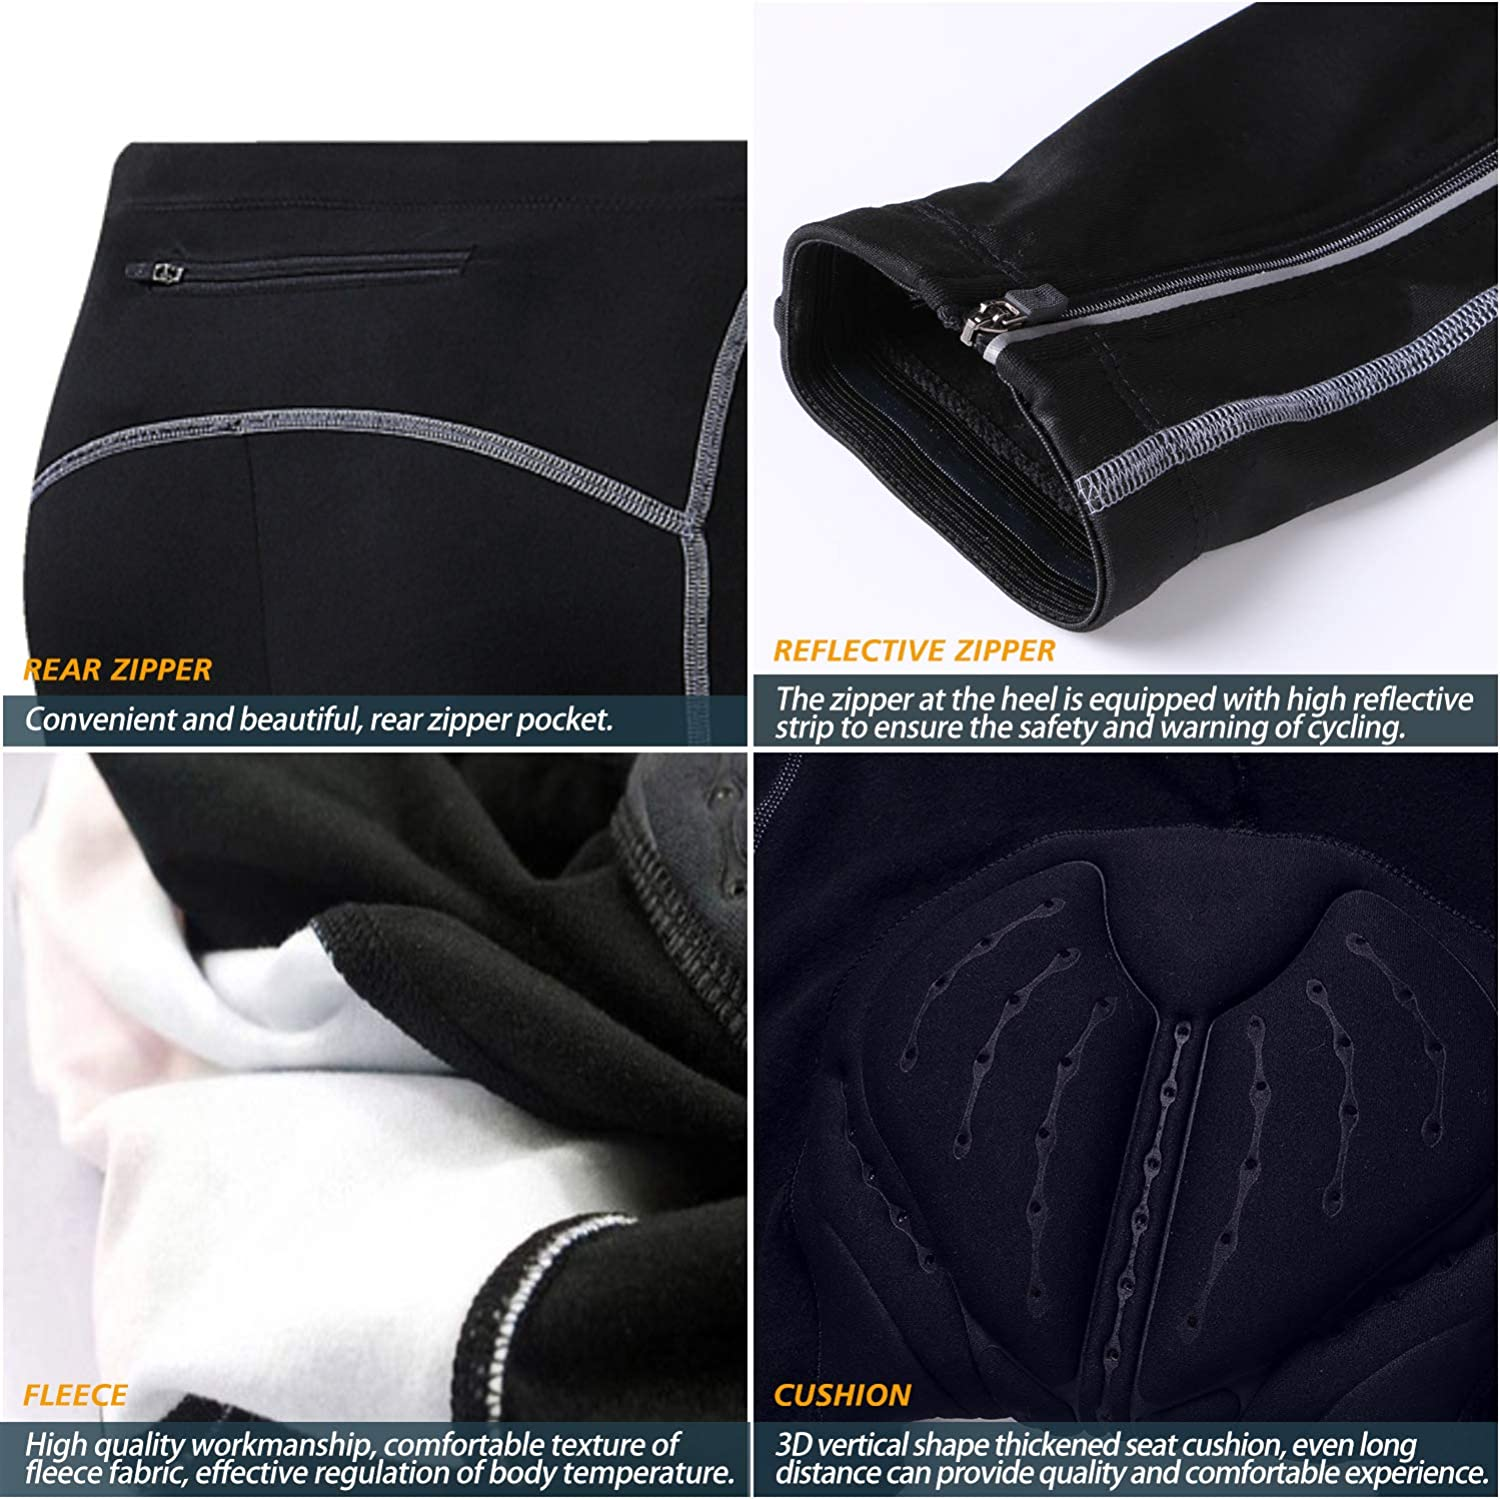 COOLOMG Mens Padded Windproof Cycling Pants Fleece Lined Athletic Tights Thermal Running Riding